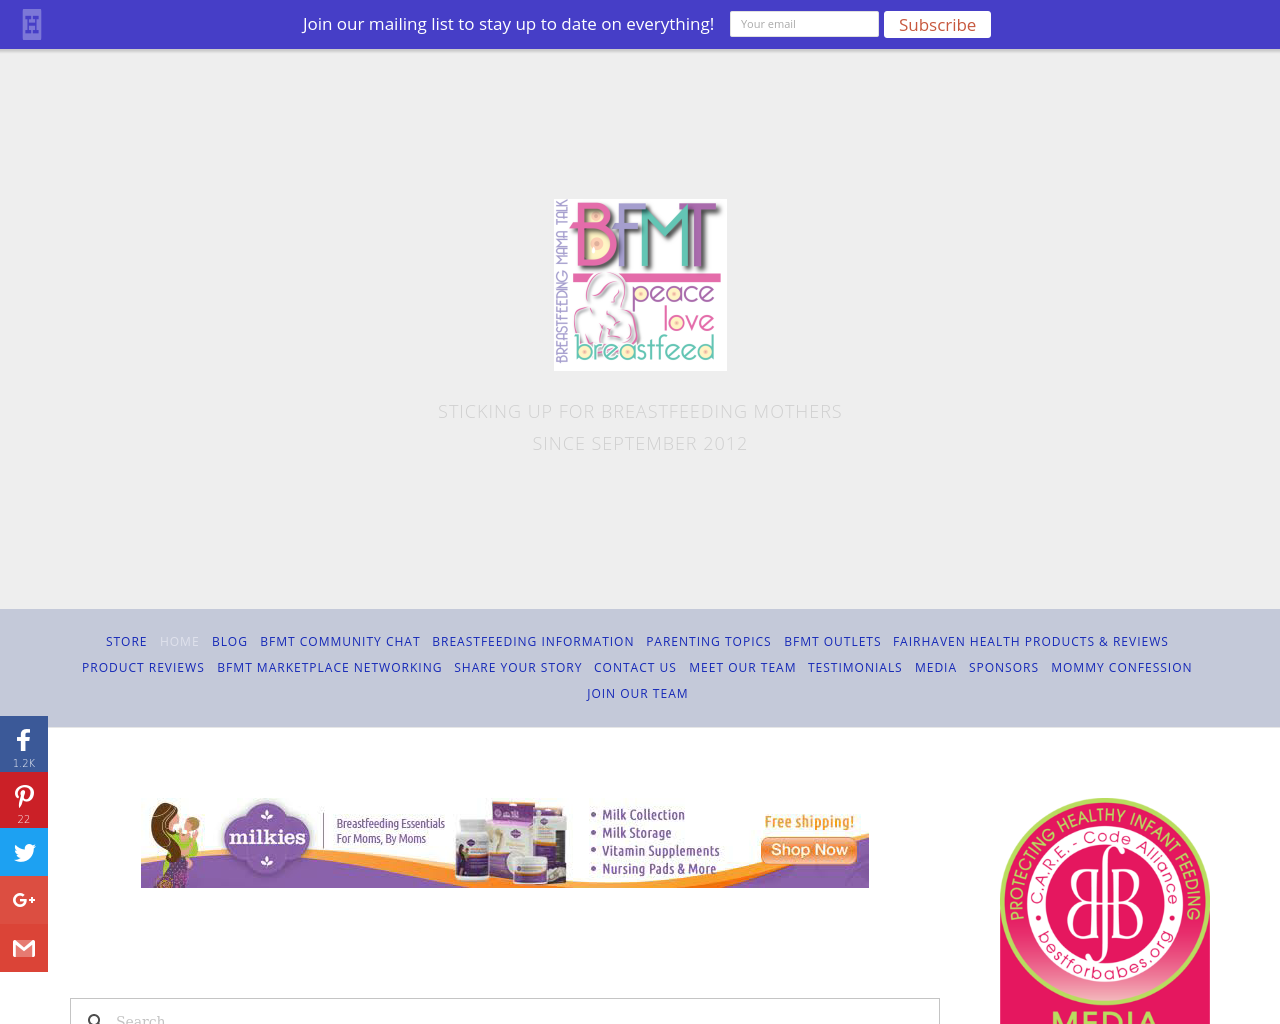 BFMT-Peace-Love-Breastfeed-Advertising-Reviews-Pricing